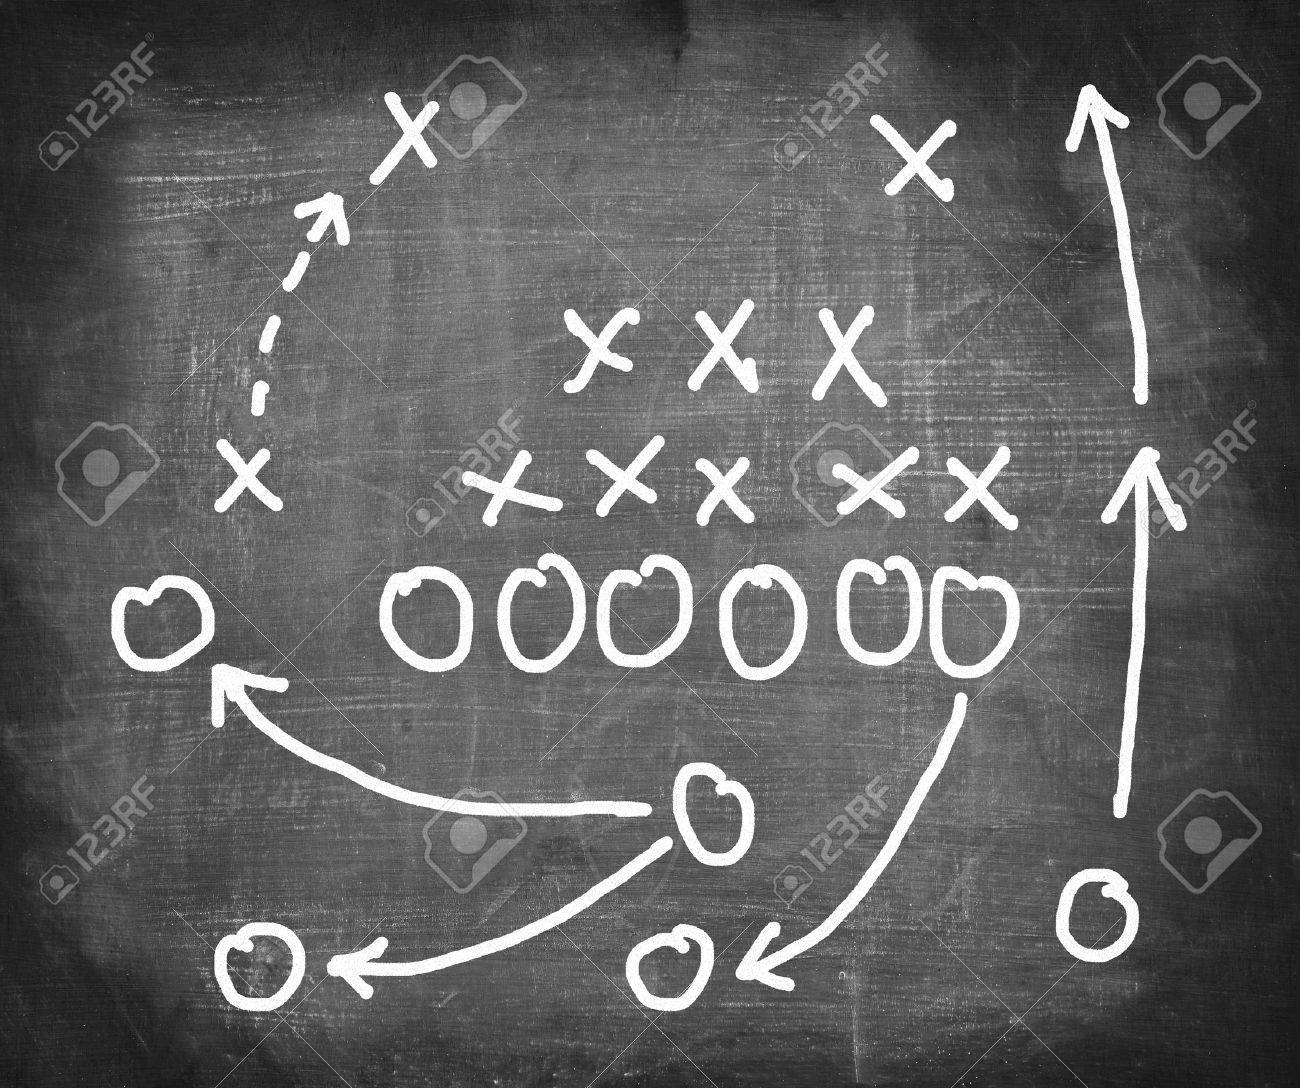 Plan of a football game on a blackboard. Stock Photo - 31272759